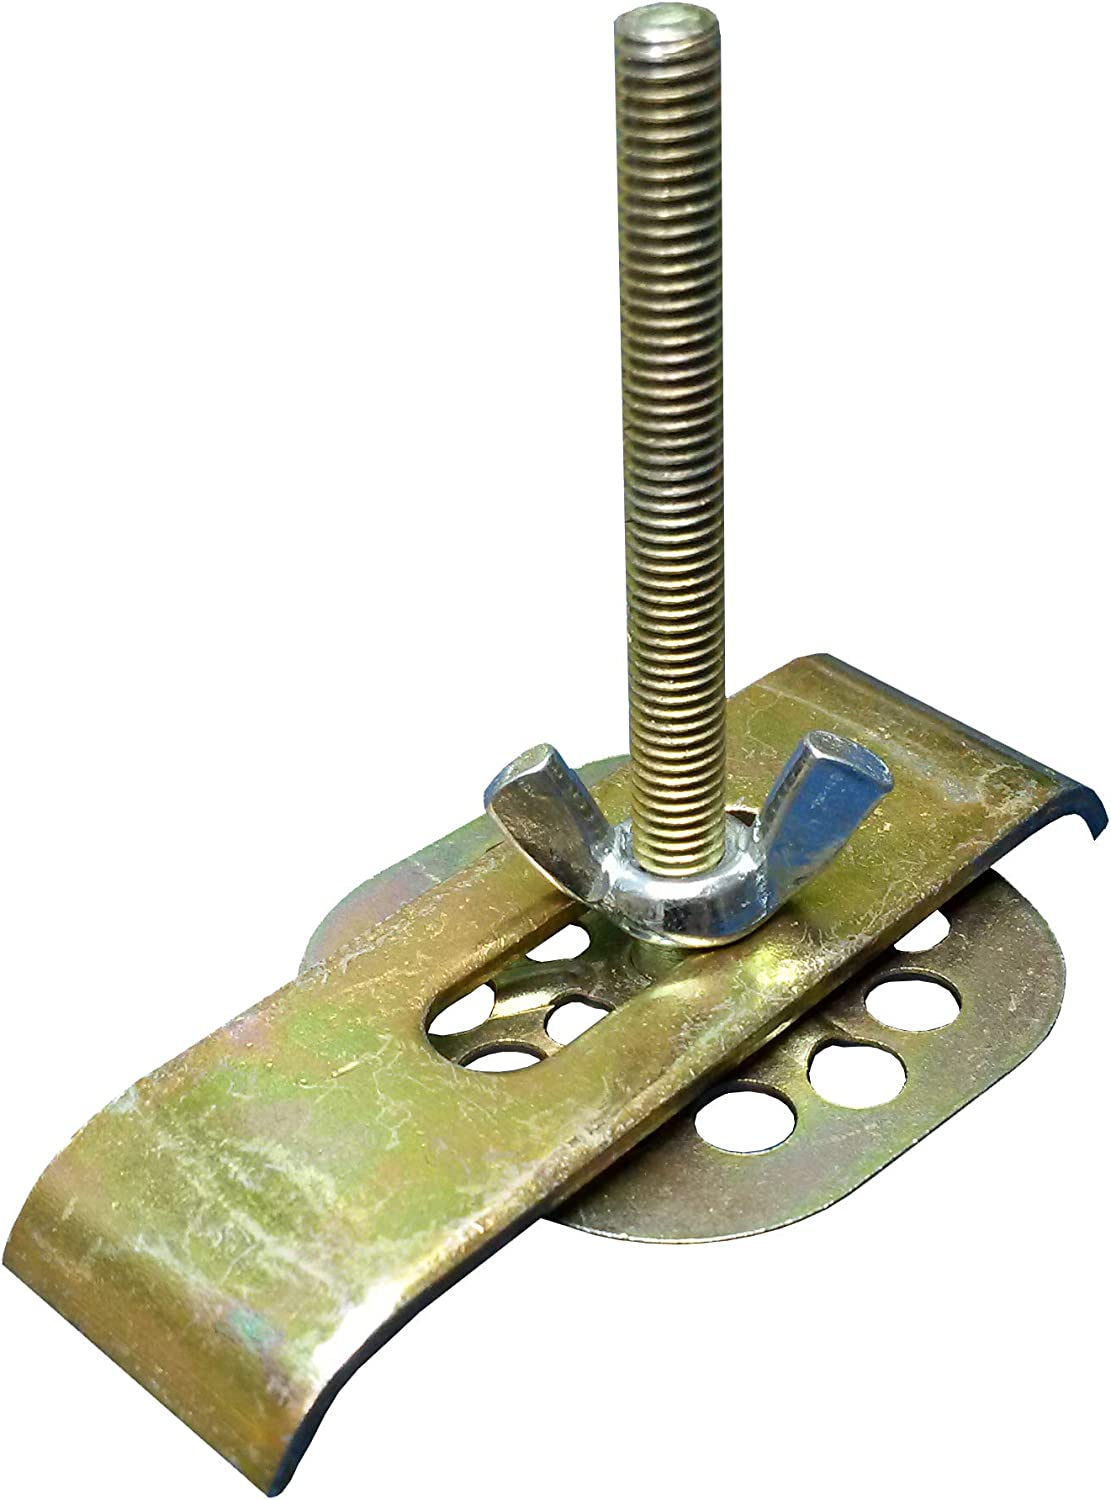 epoxy sink clip kits to install or re install fallen kitchen or bath sinks made of any type material